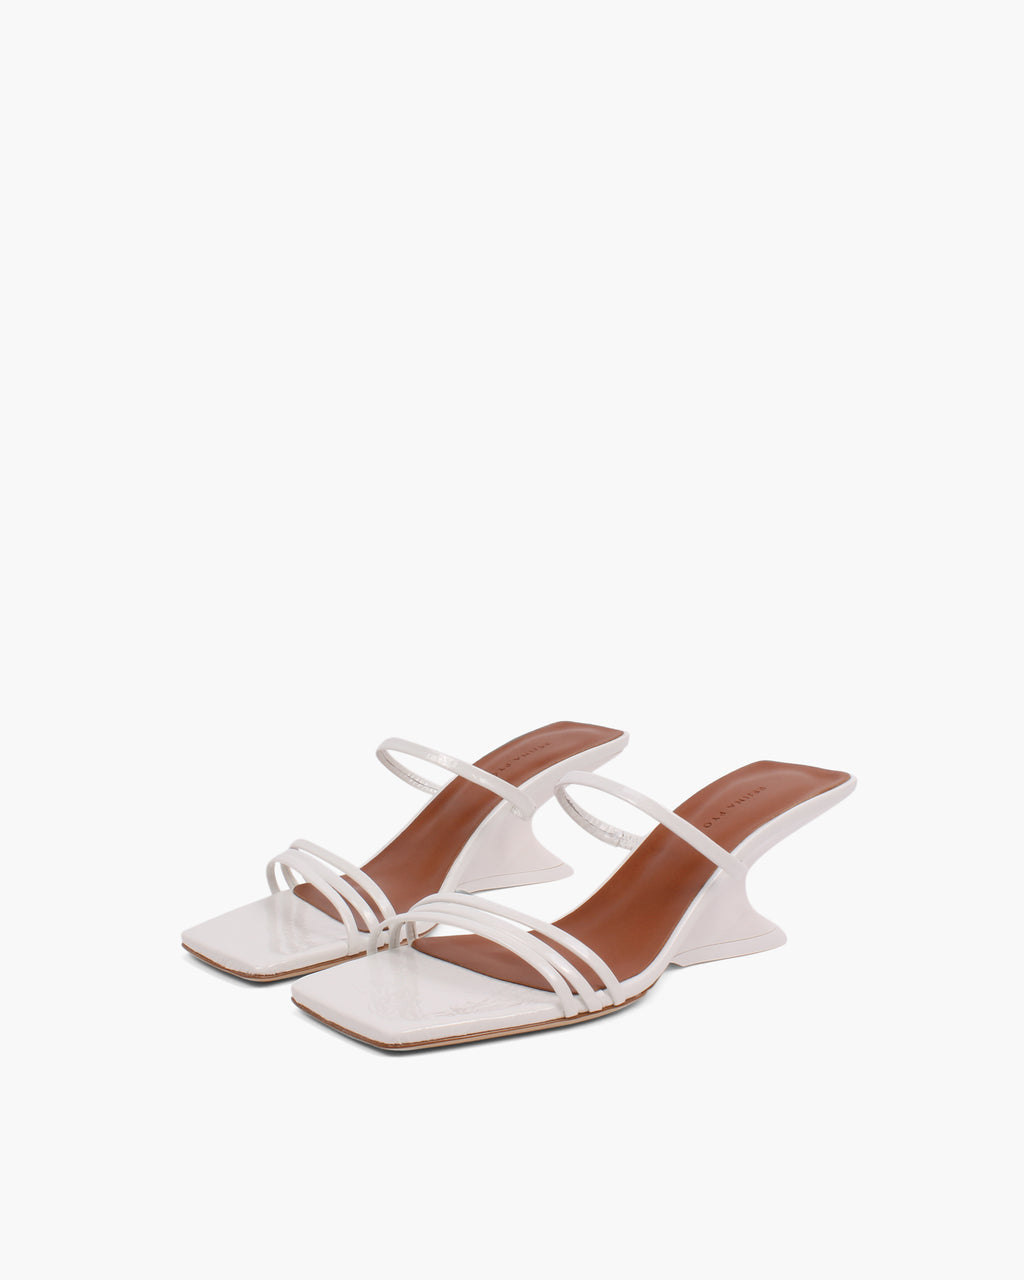 Romy Sandals Leather Crinkle White